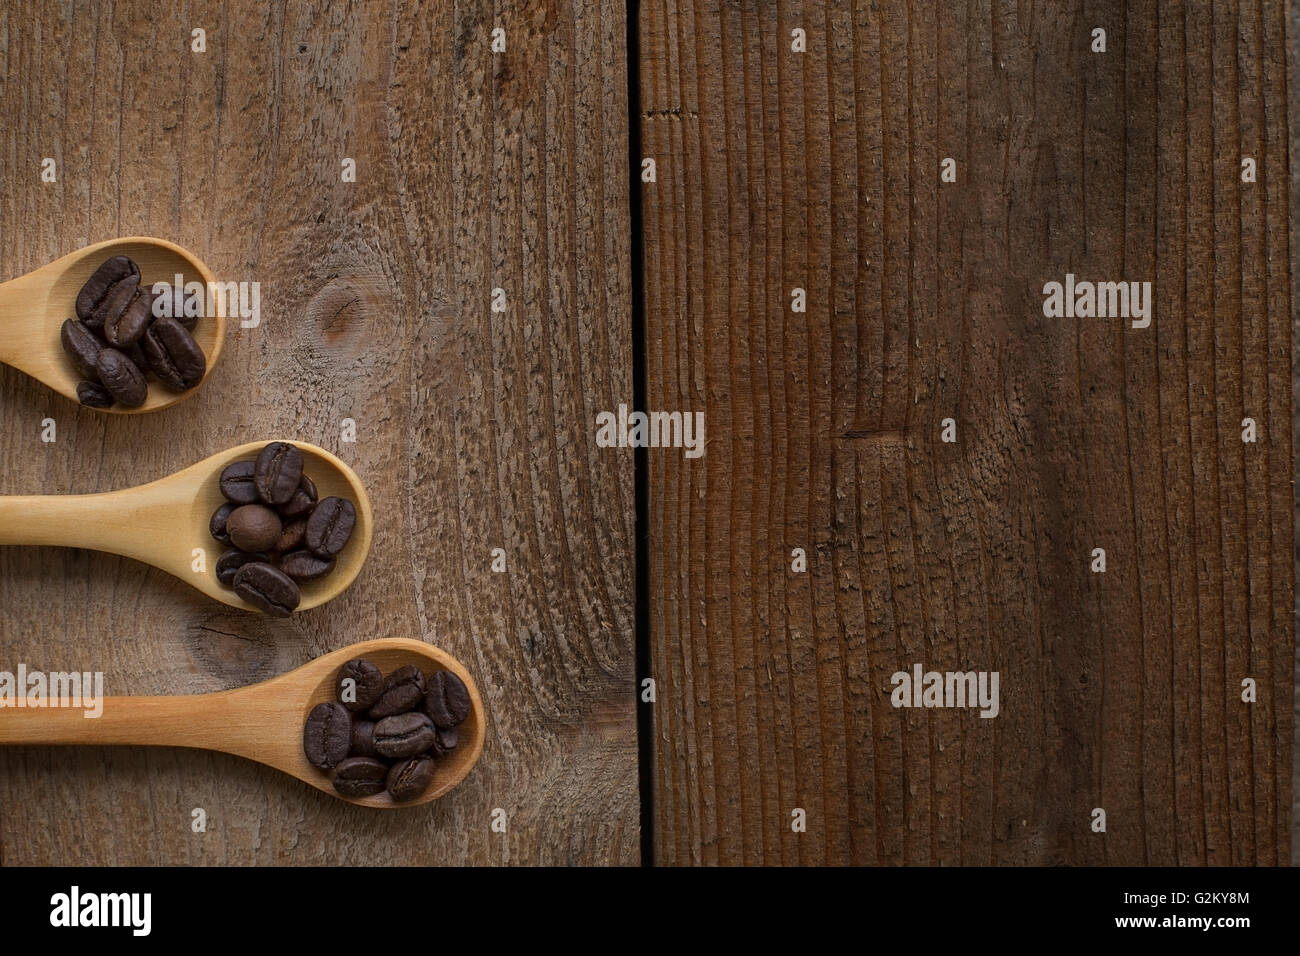 coffee bean Spoon on a wooden table - Stock Image